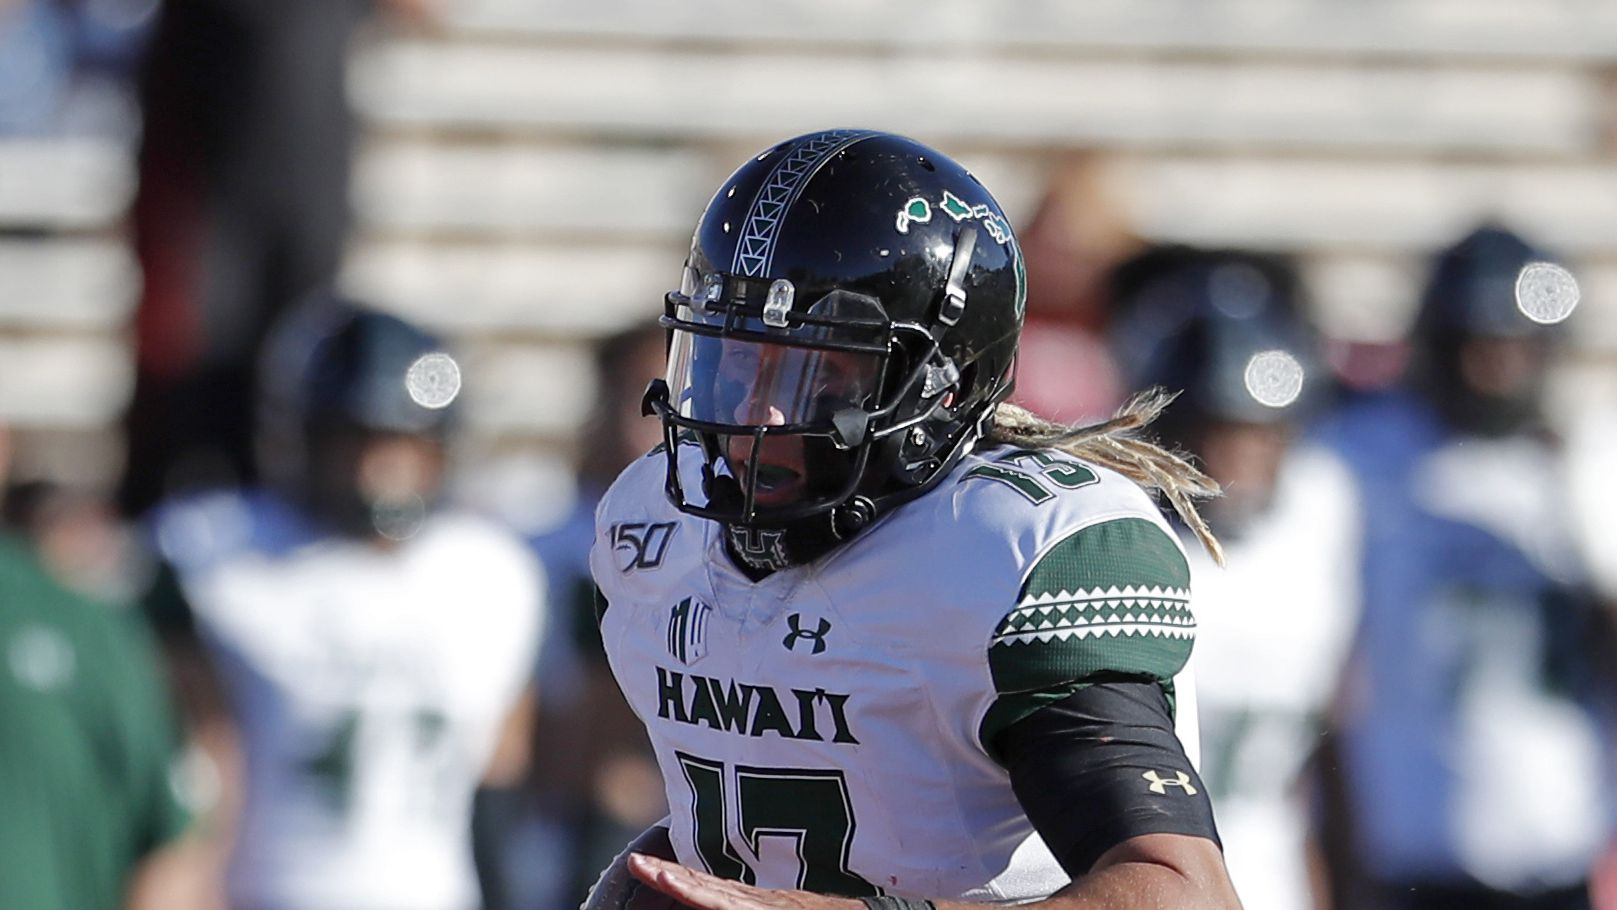 Titans sign former UH quarterback Cole McDonald to four-year contract